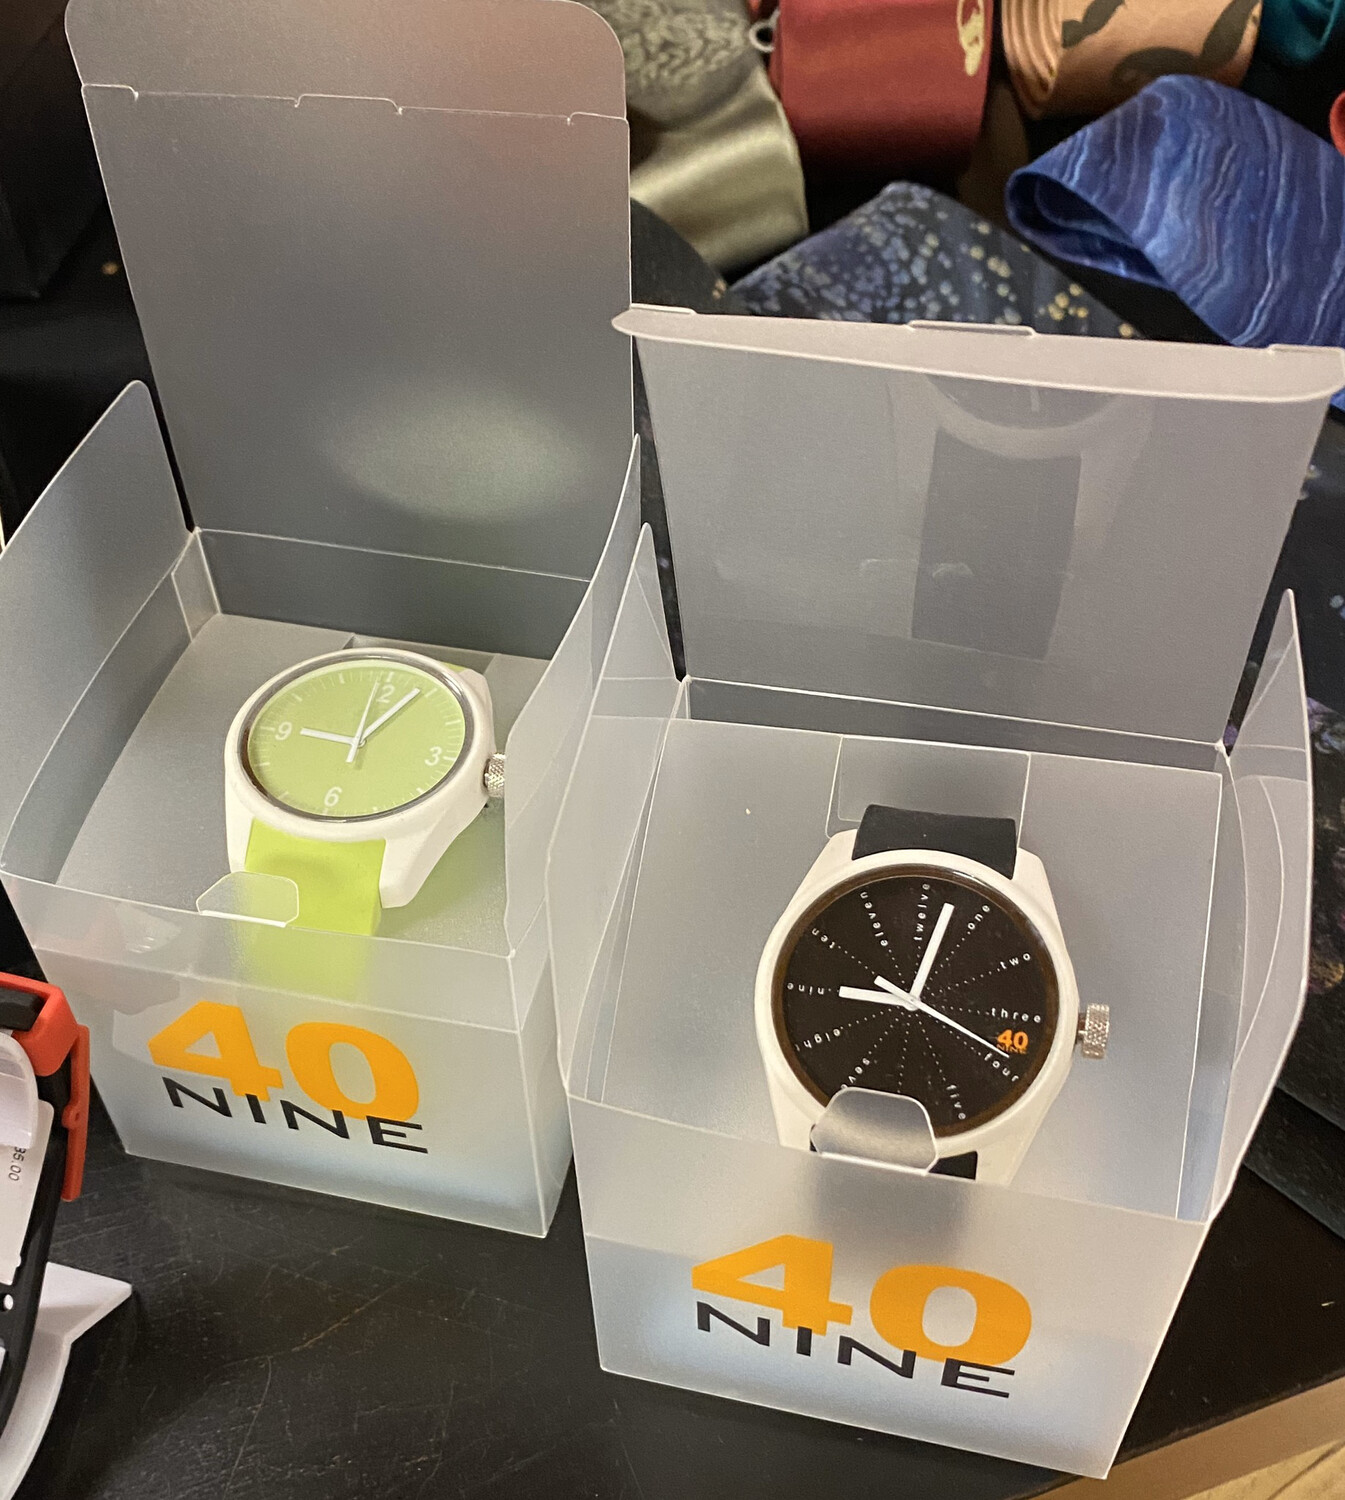 Fun Watches Black Face. Water Resistant 2 Year Warranty Japanese Quartz Boxed. Tap For Styles.